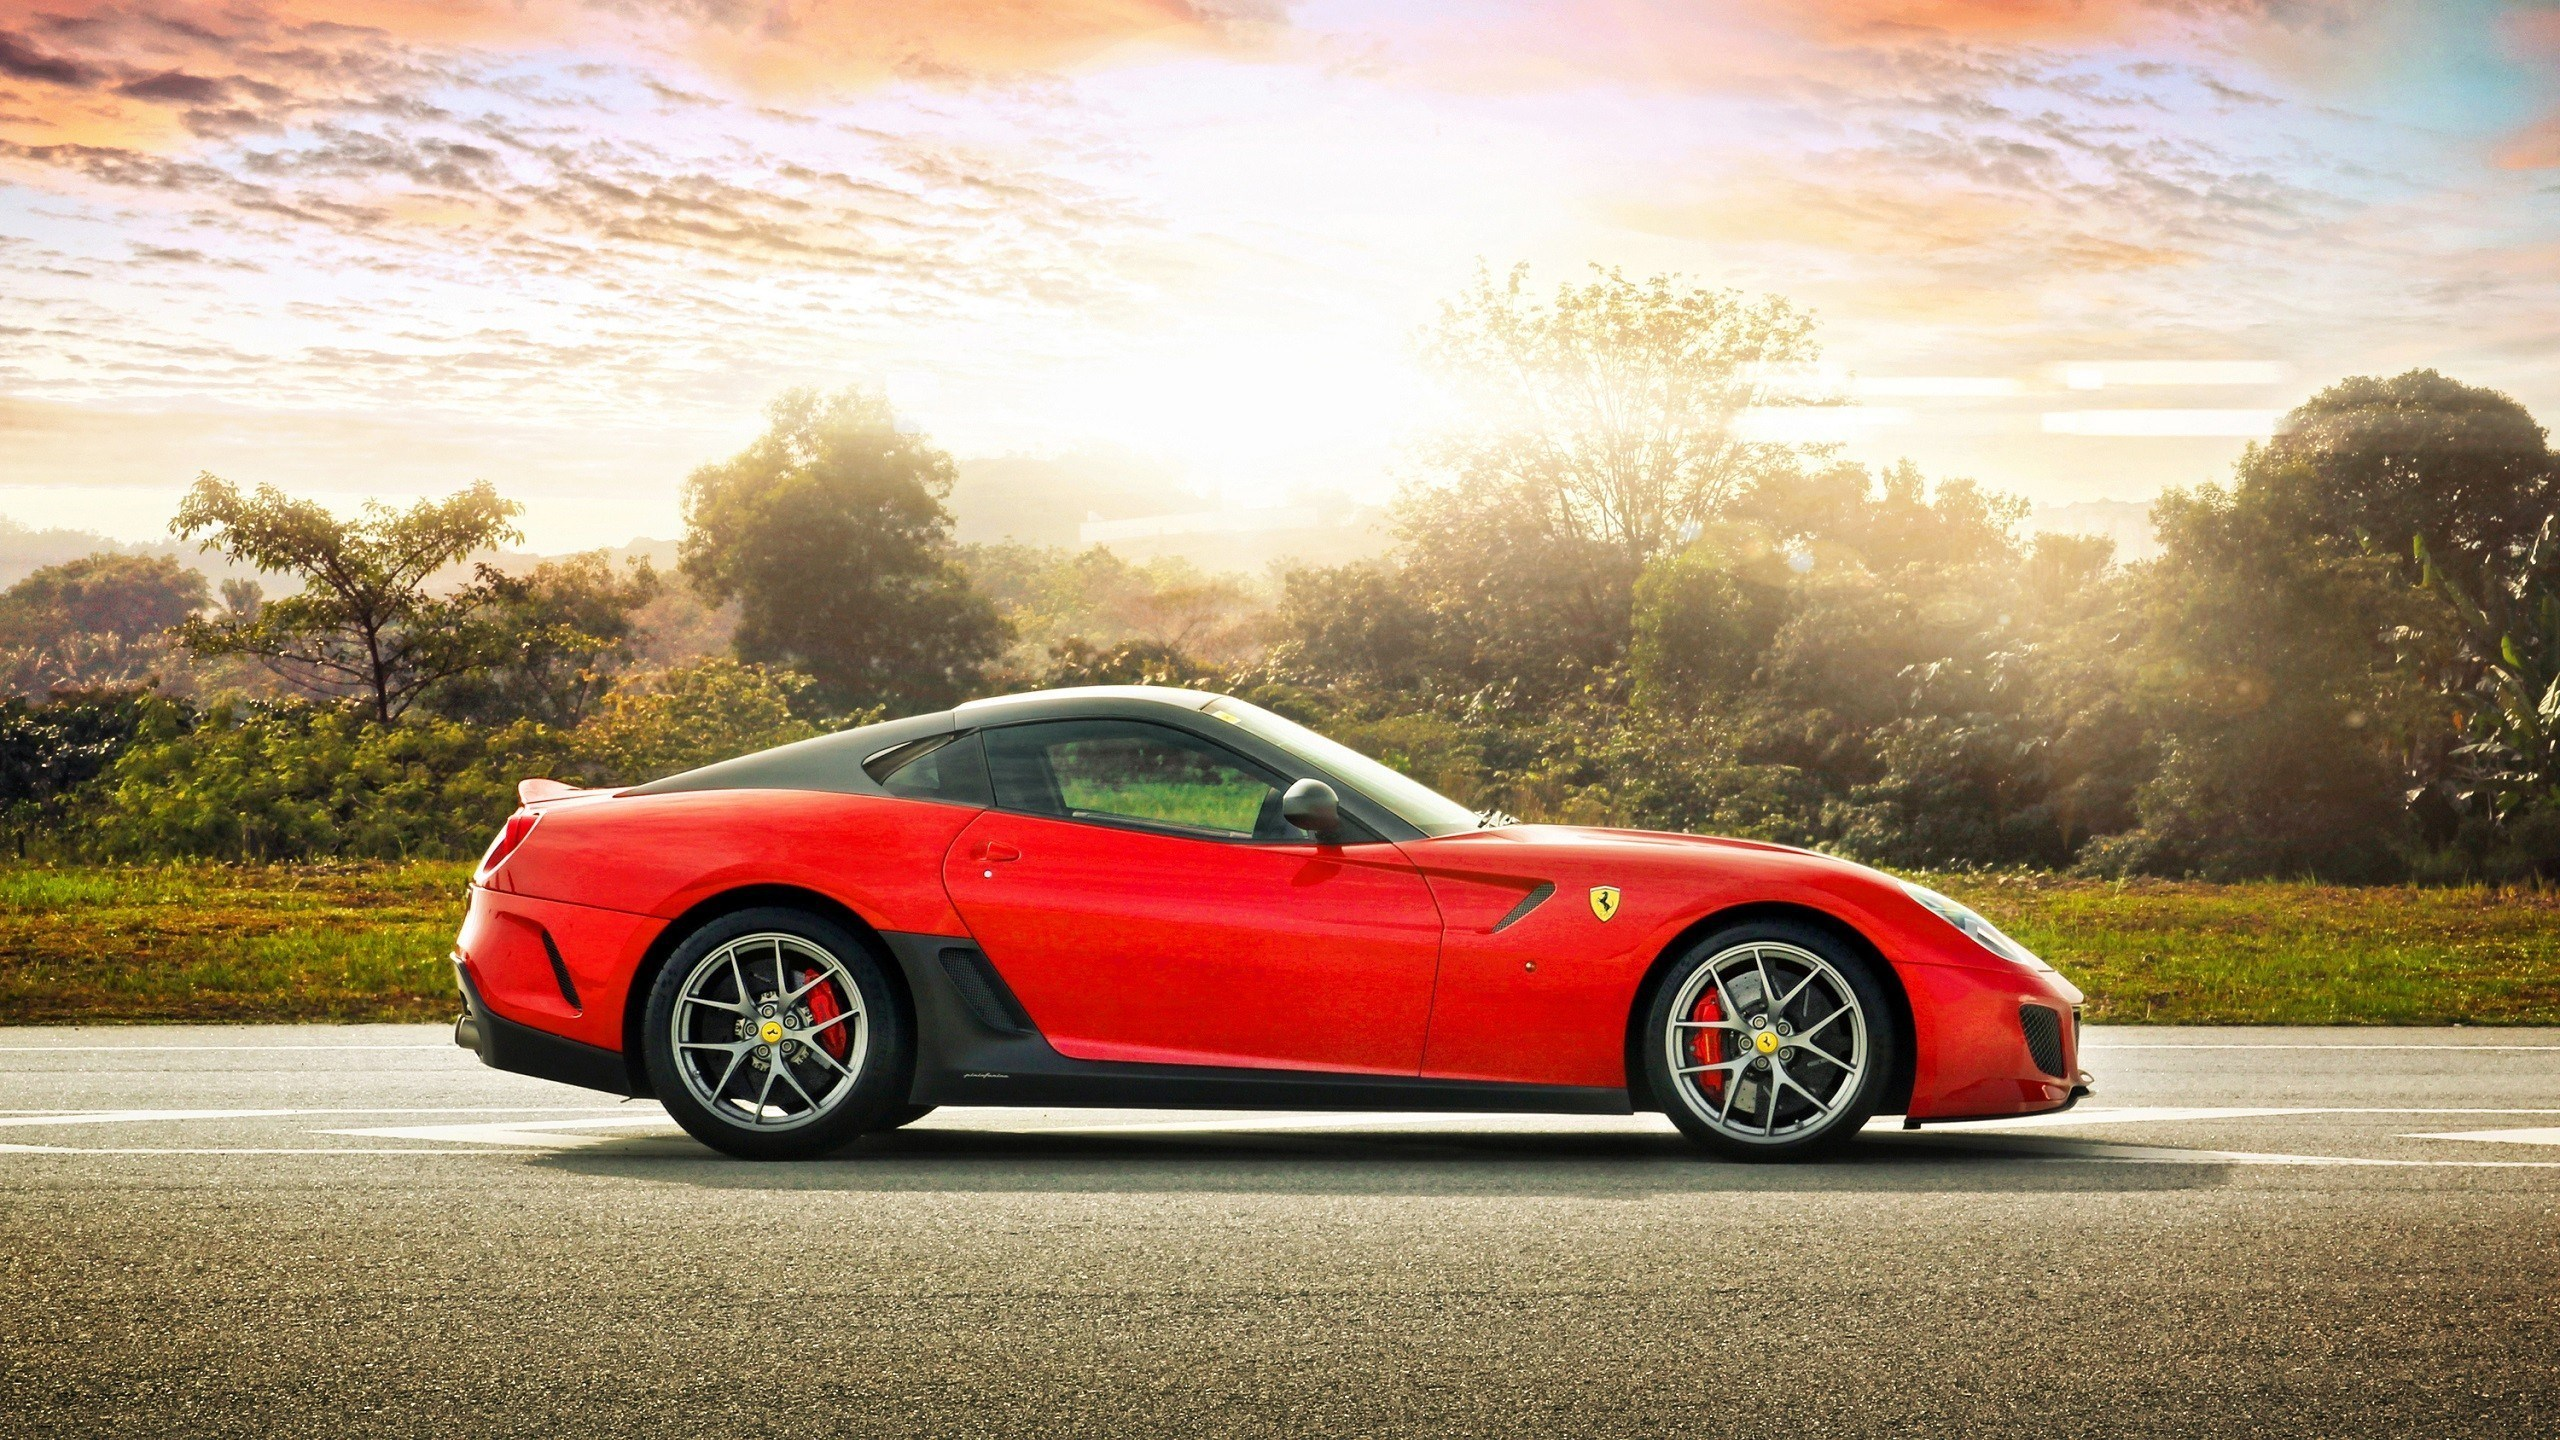 Fantastic Red Ferrari Wallpaper